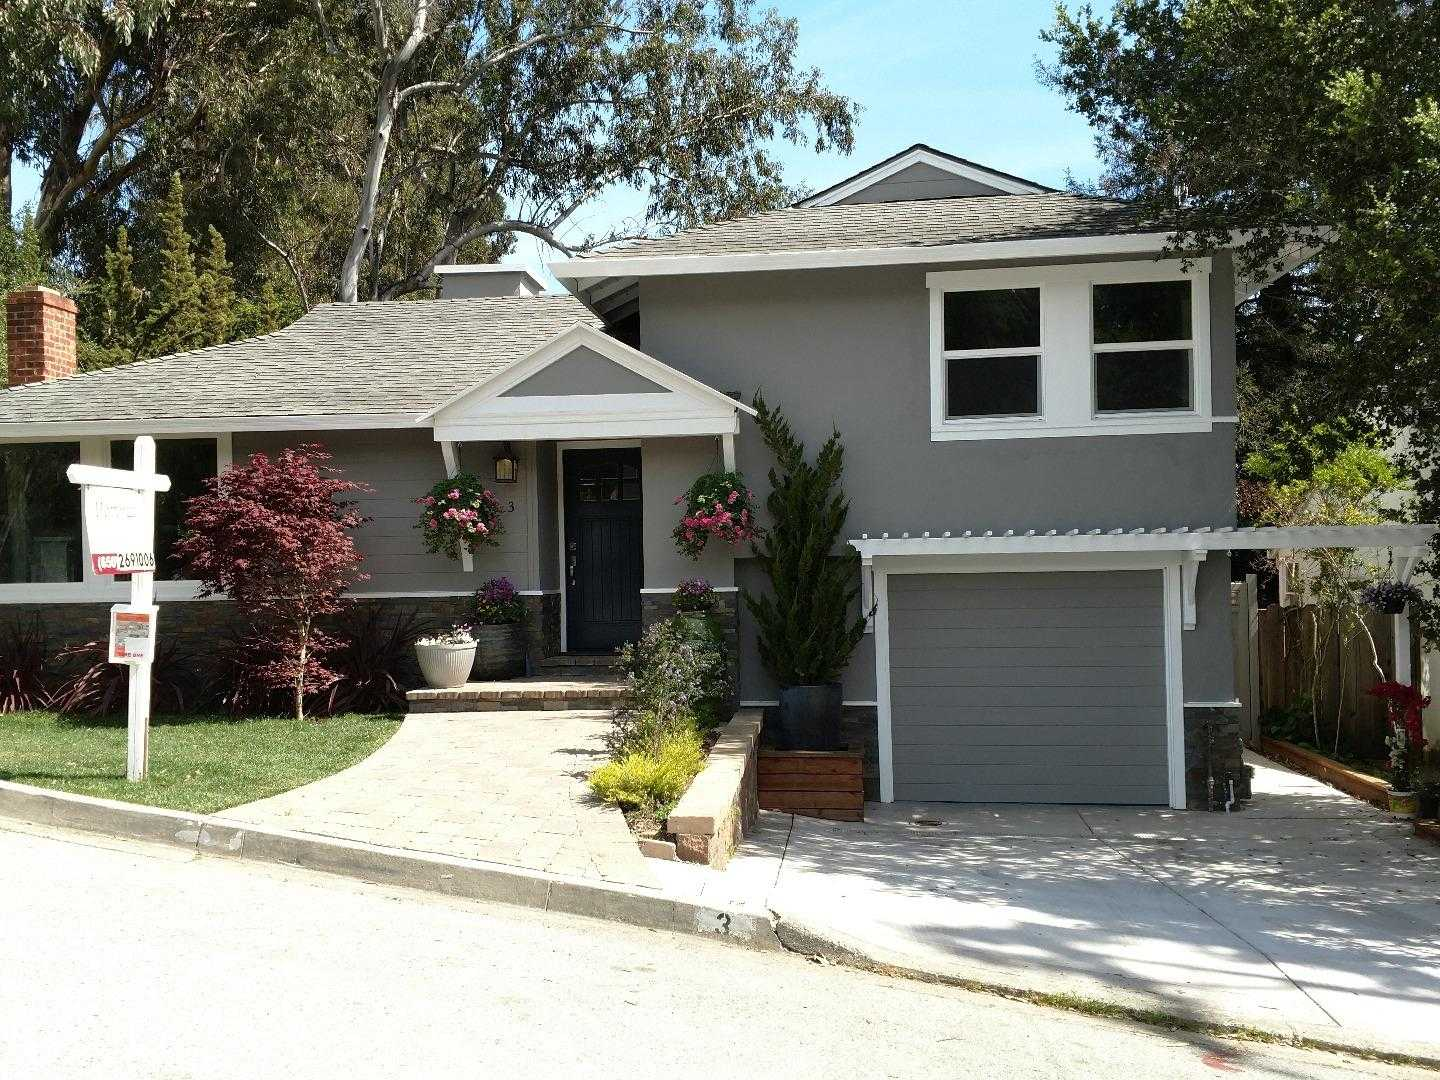 $2,730,000 - 5Br/5Ba -  for Sale in San Carlos